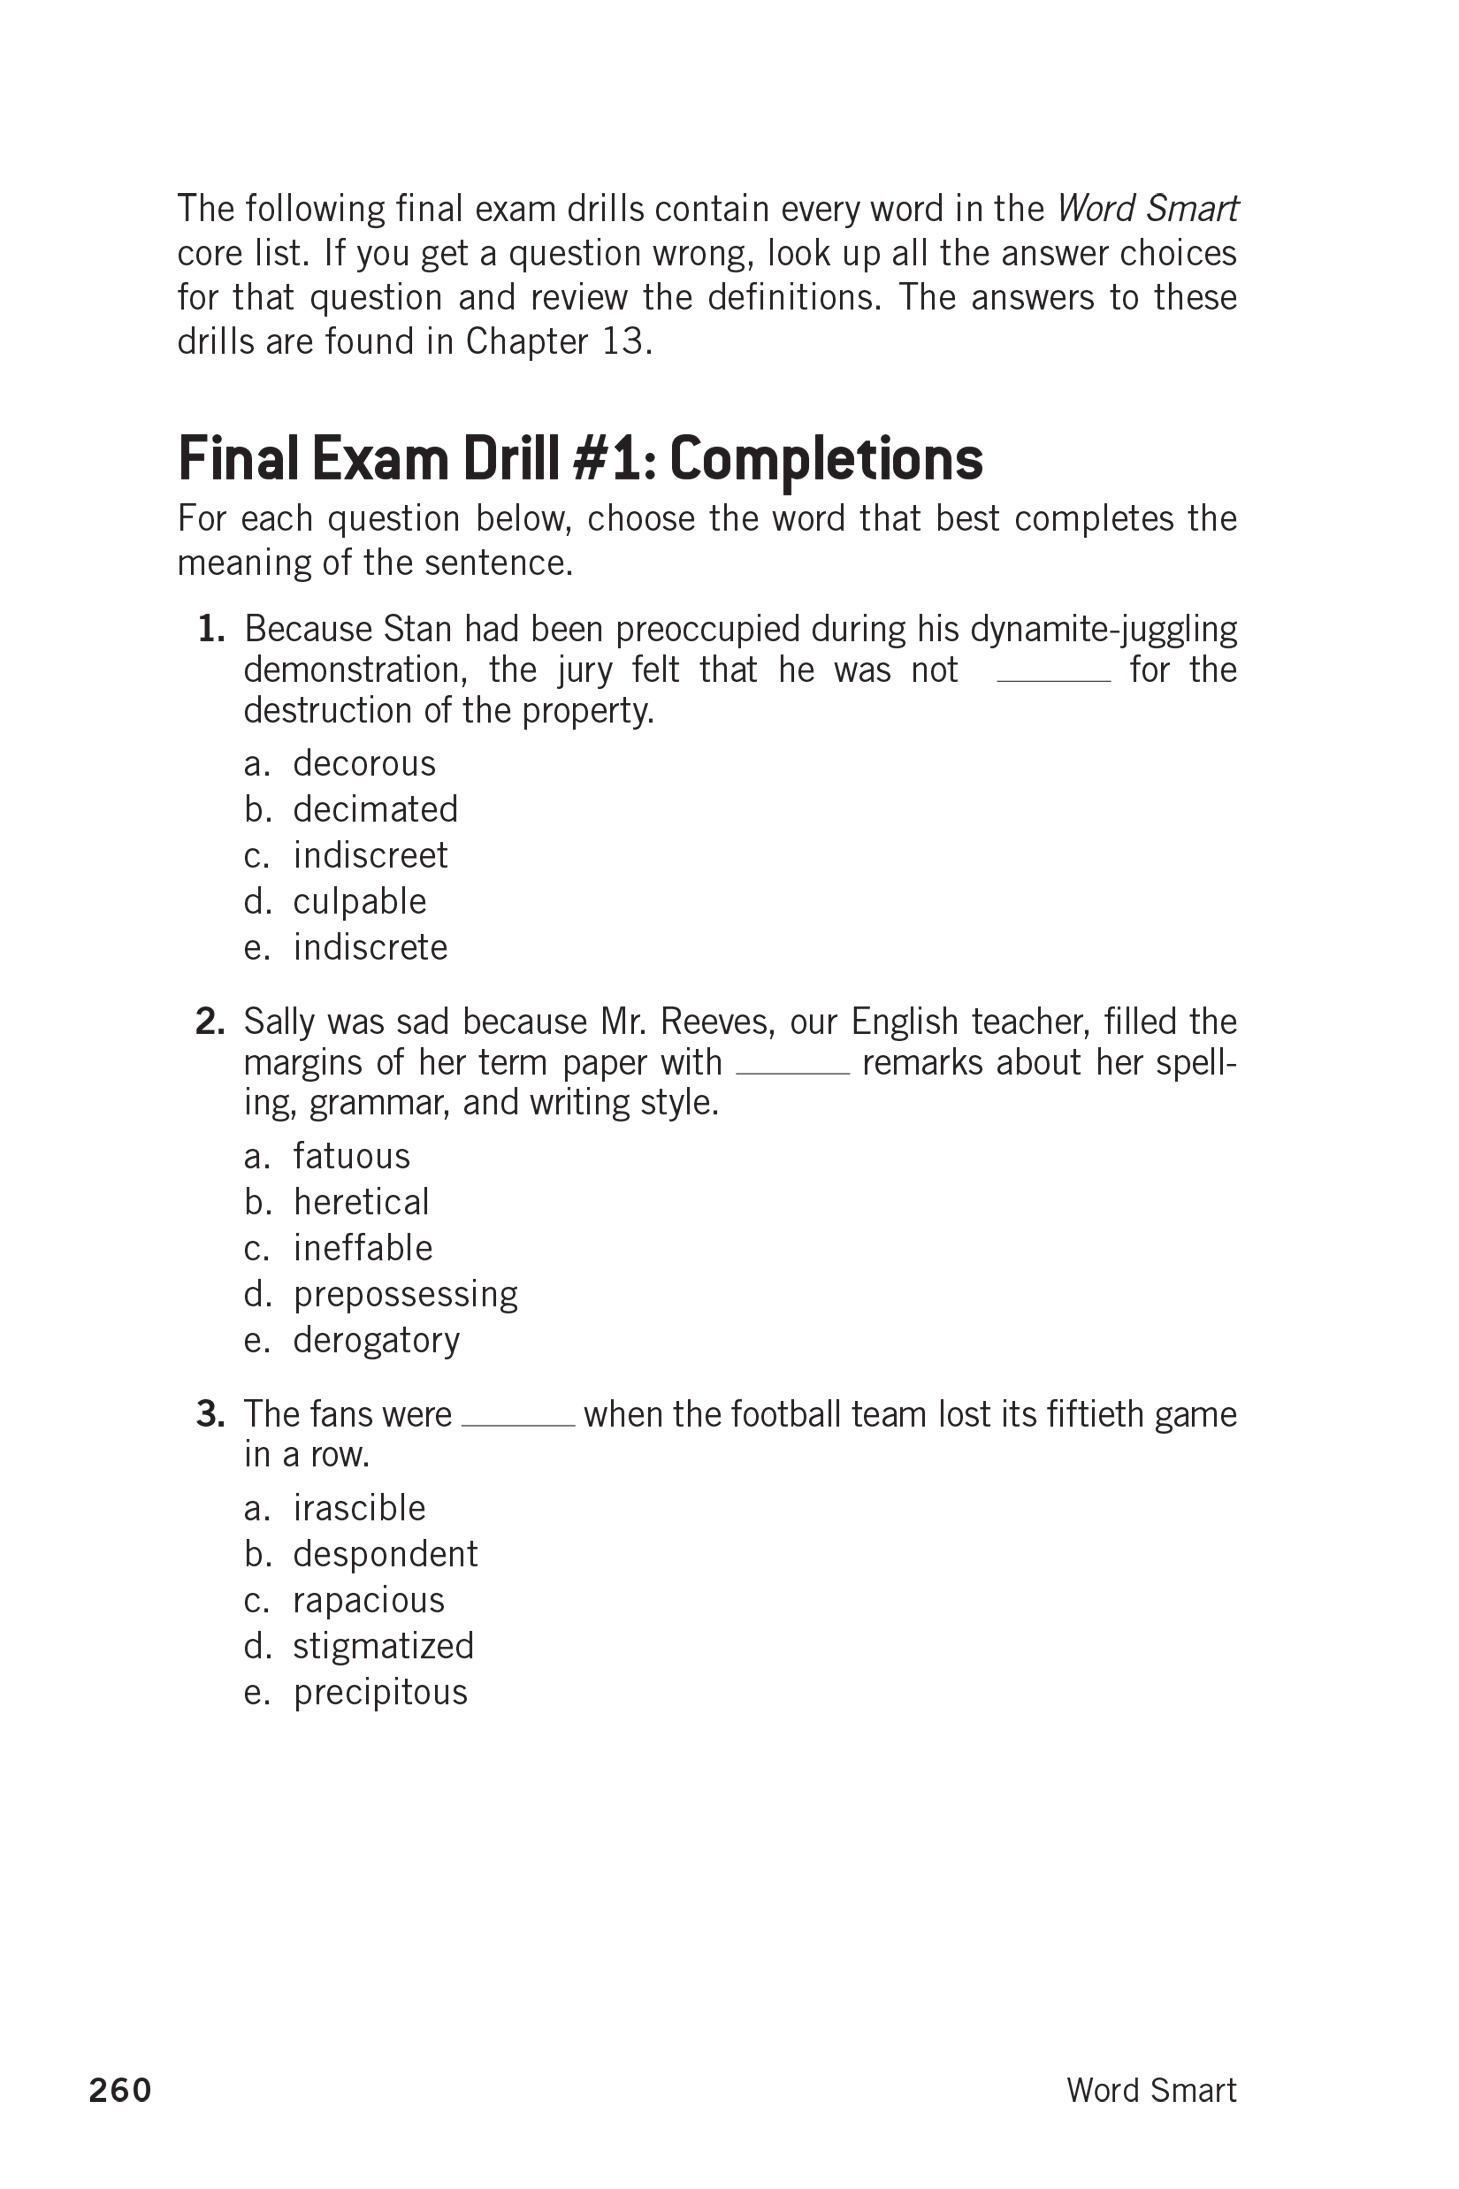 Extended Ebook Content For Word Smart 6th Edition The Final Exam